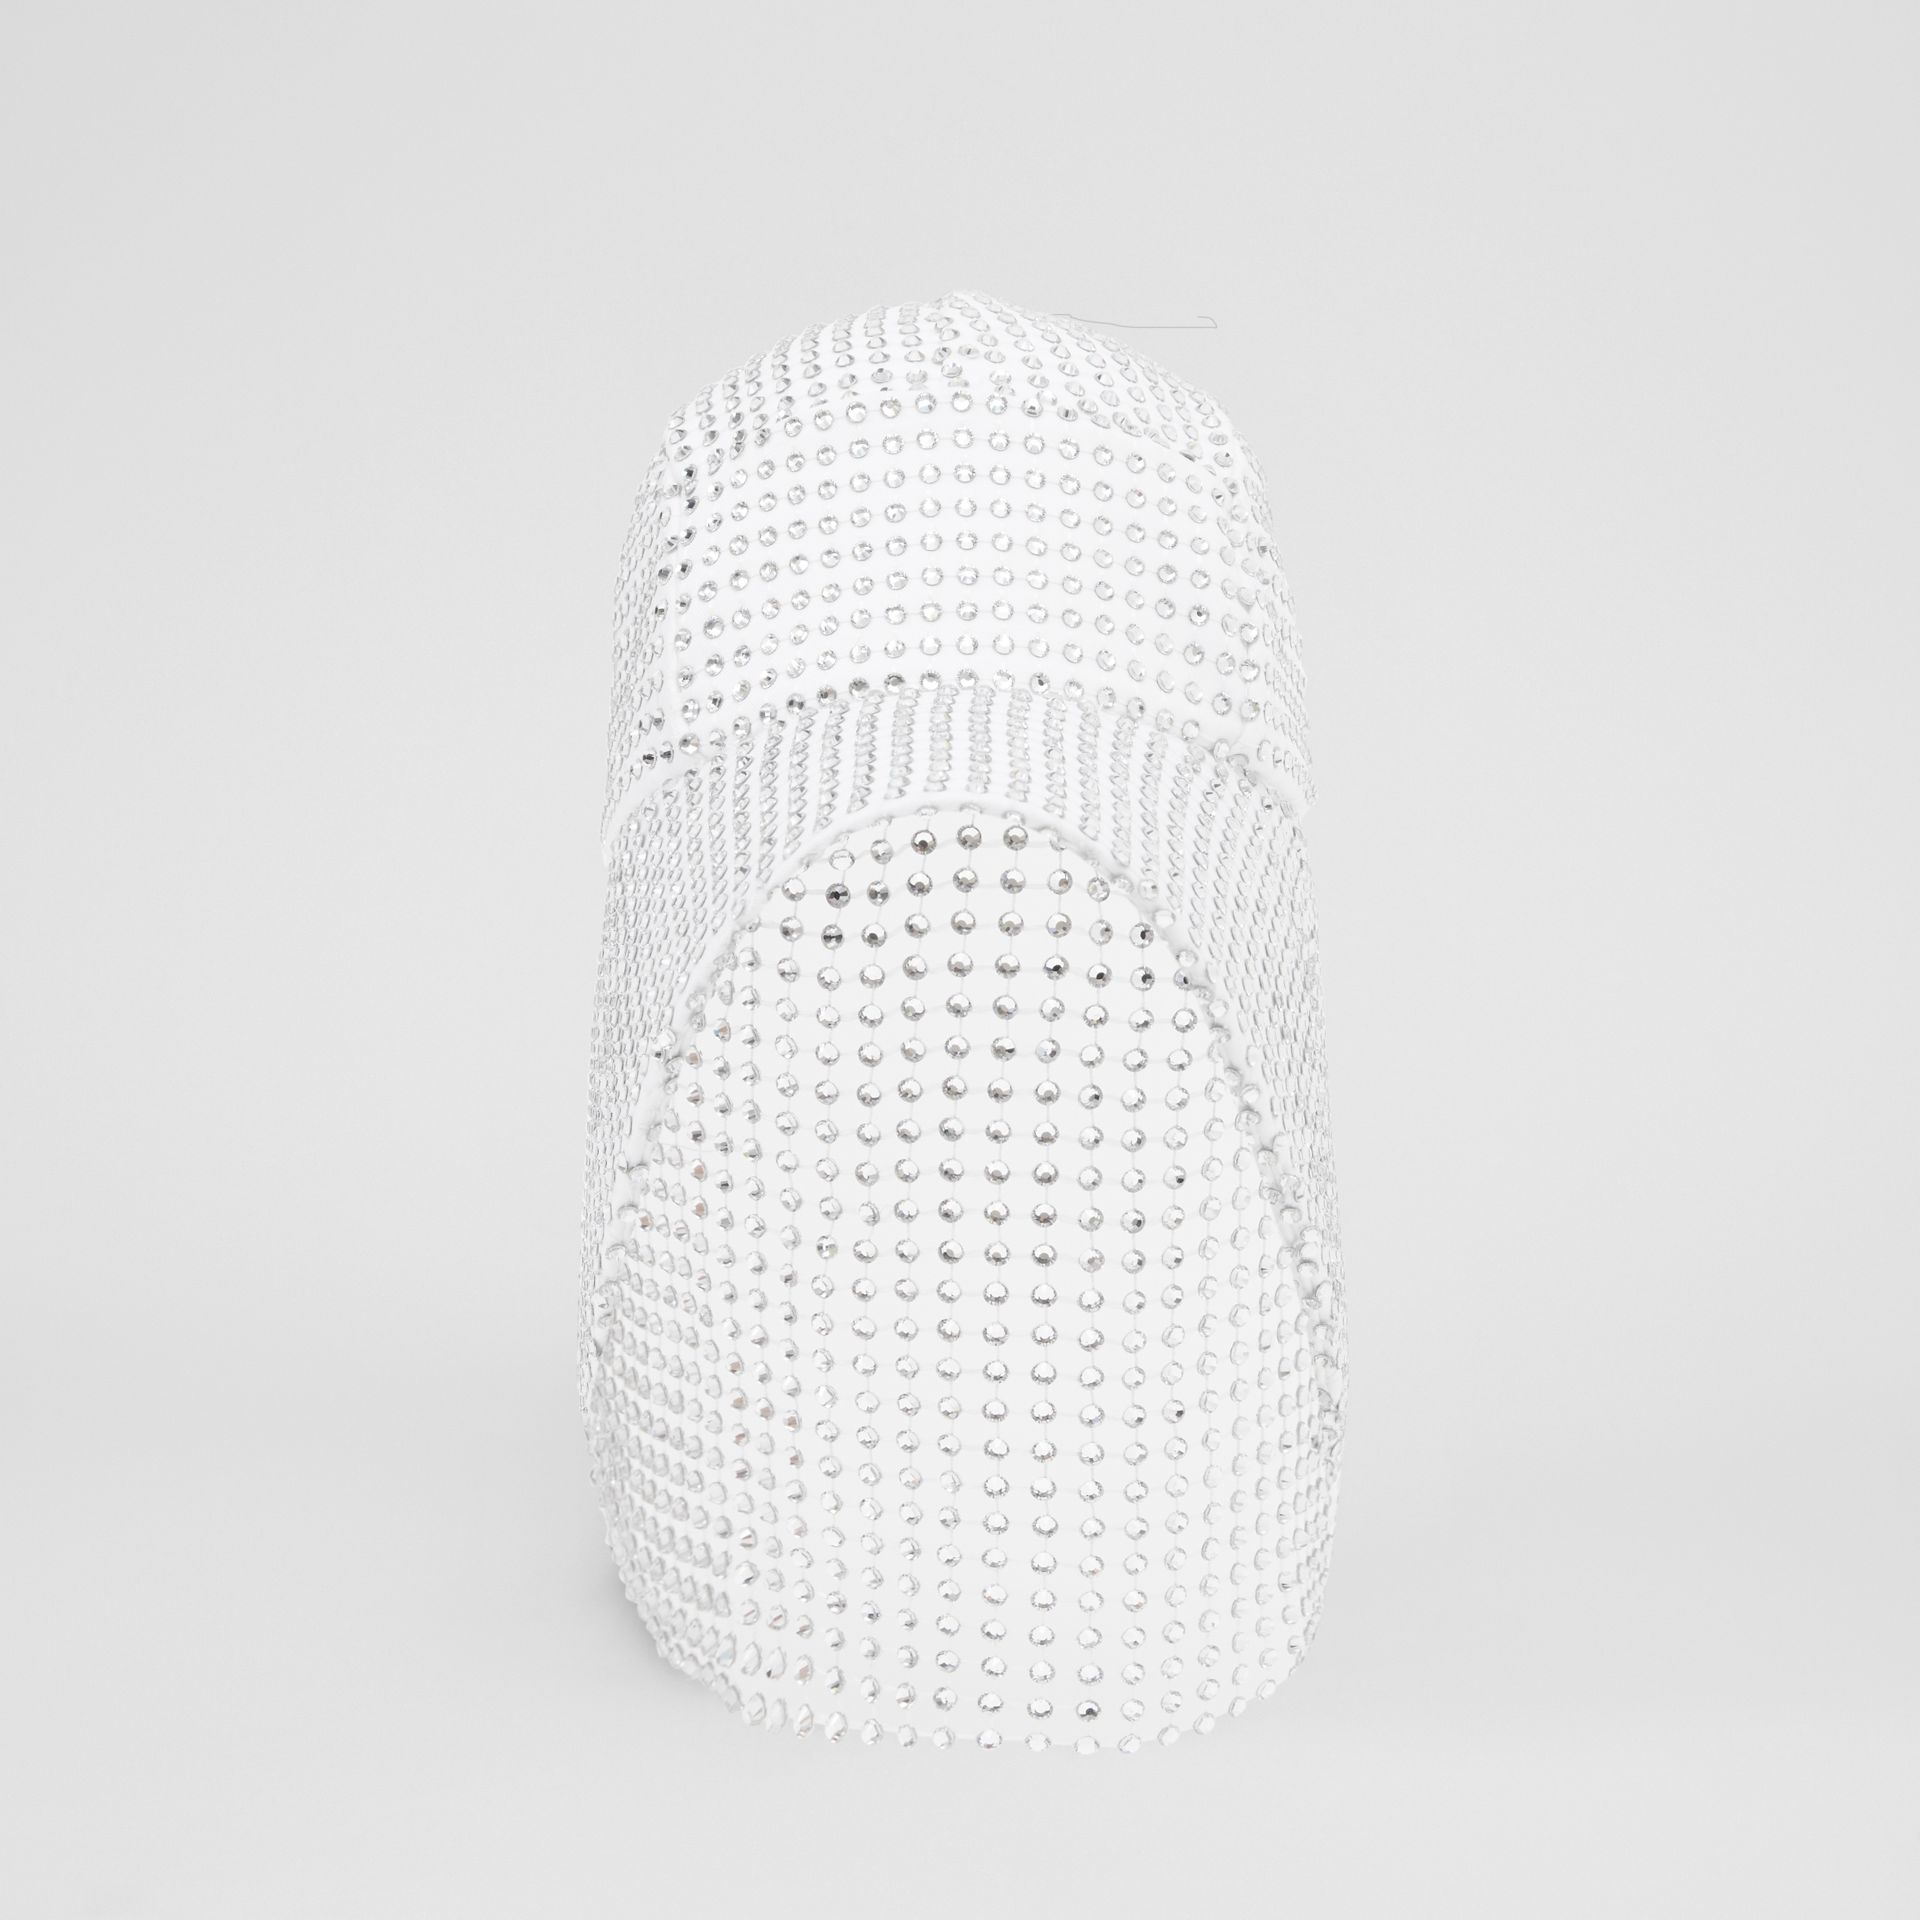 Crystal Mesh Detail Cotton Bonnet Cap in Optic White | Burberry - gallery image 4